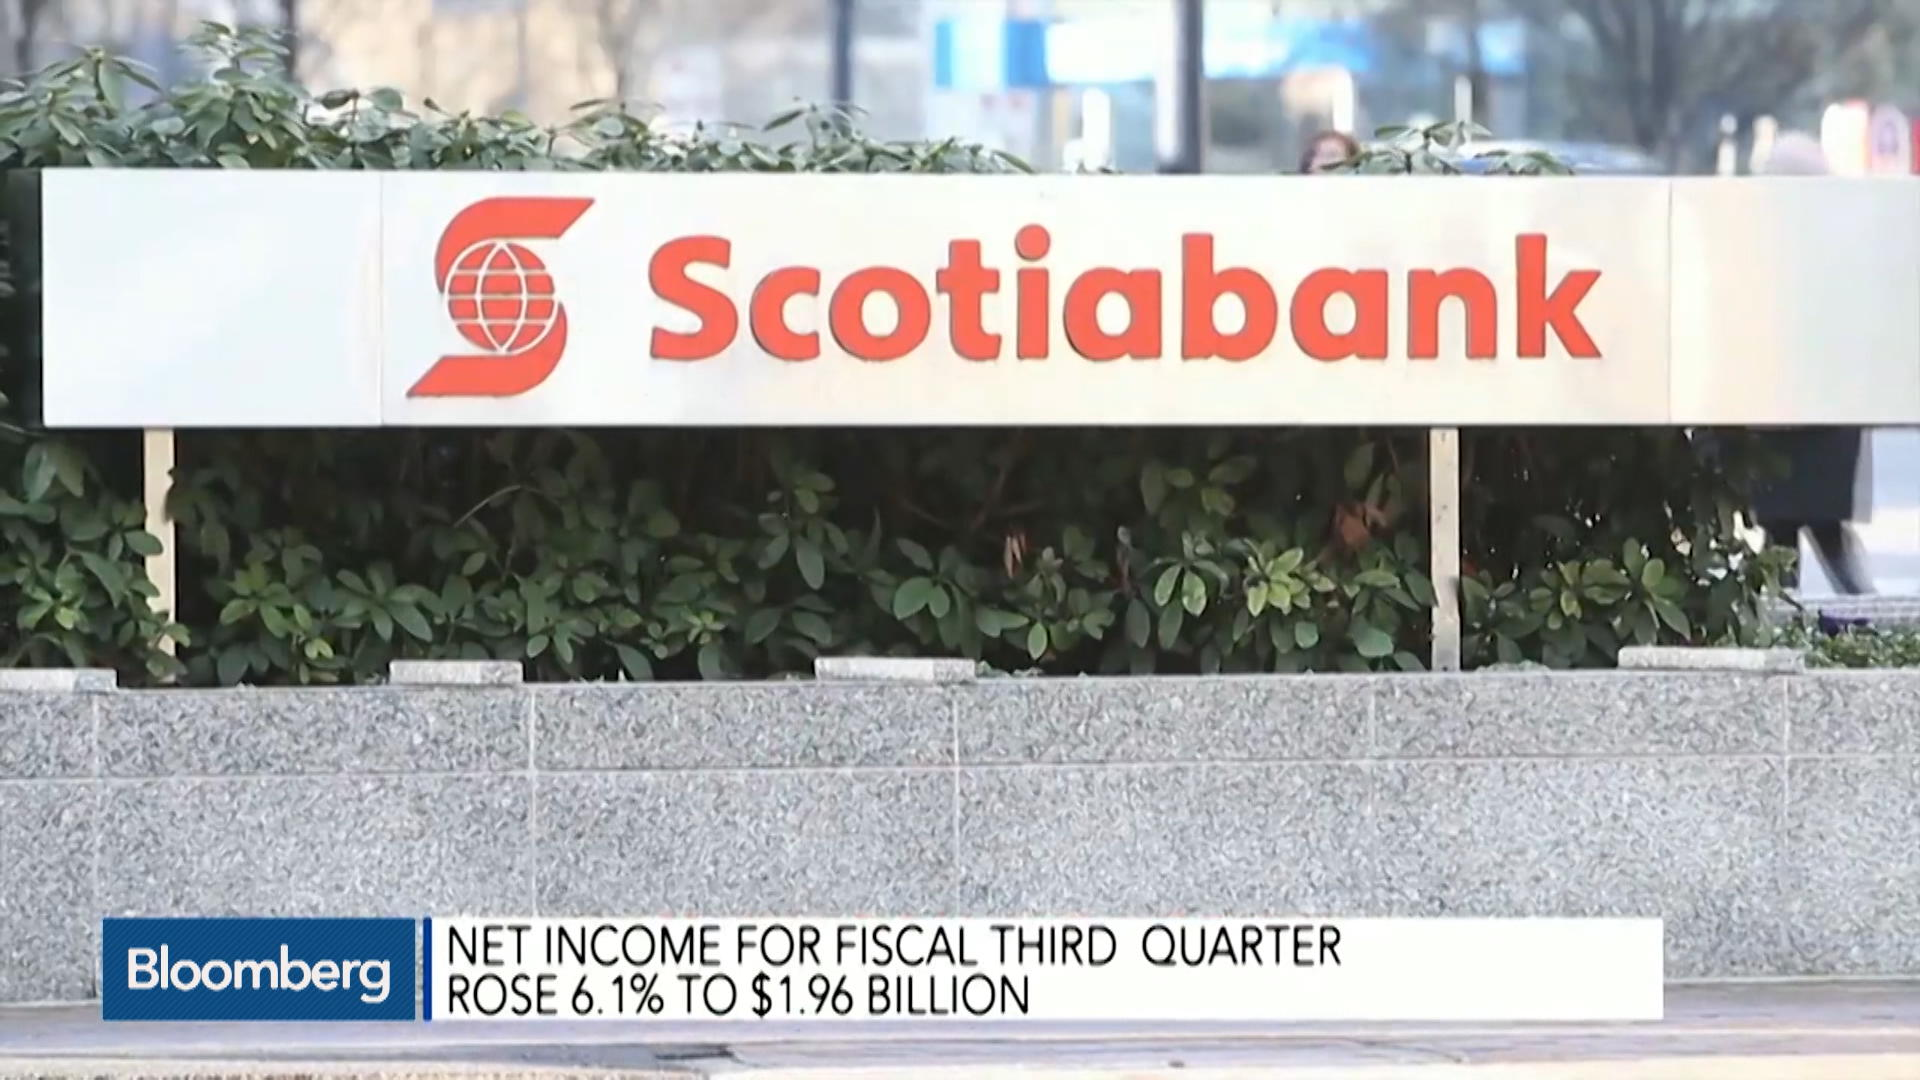 Scotiabank CEO Sees Continued Growth Ahead - Bloomberg